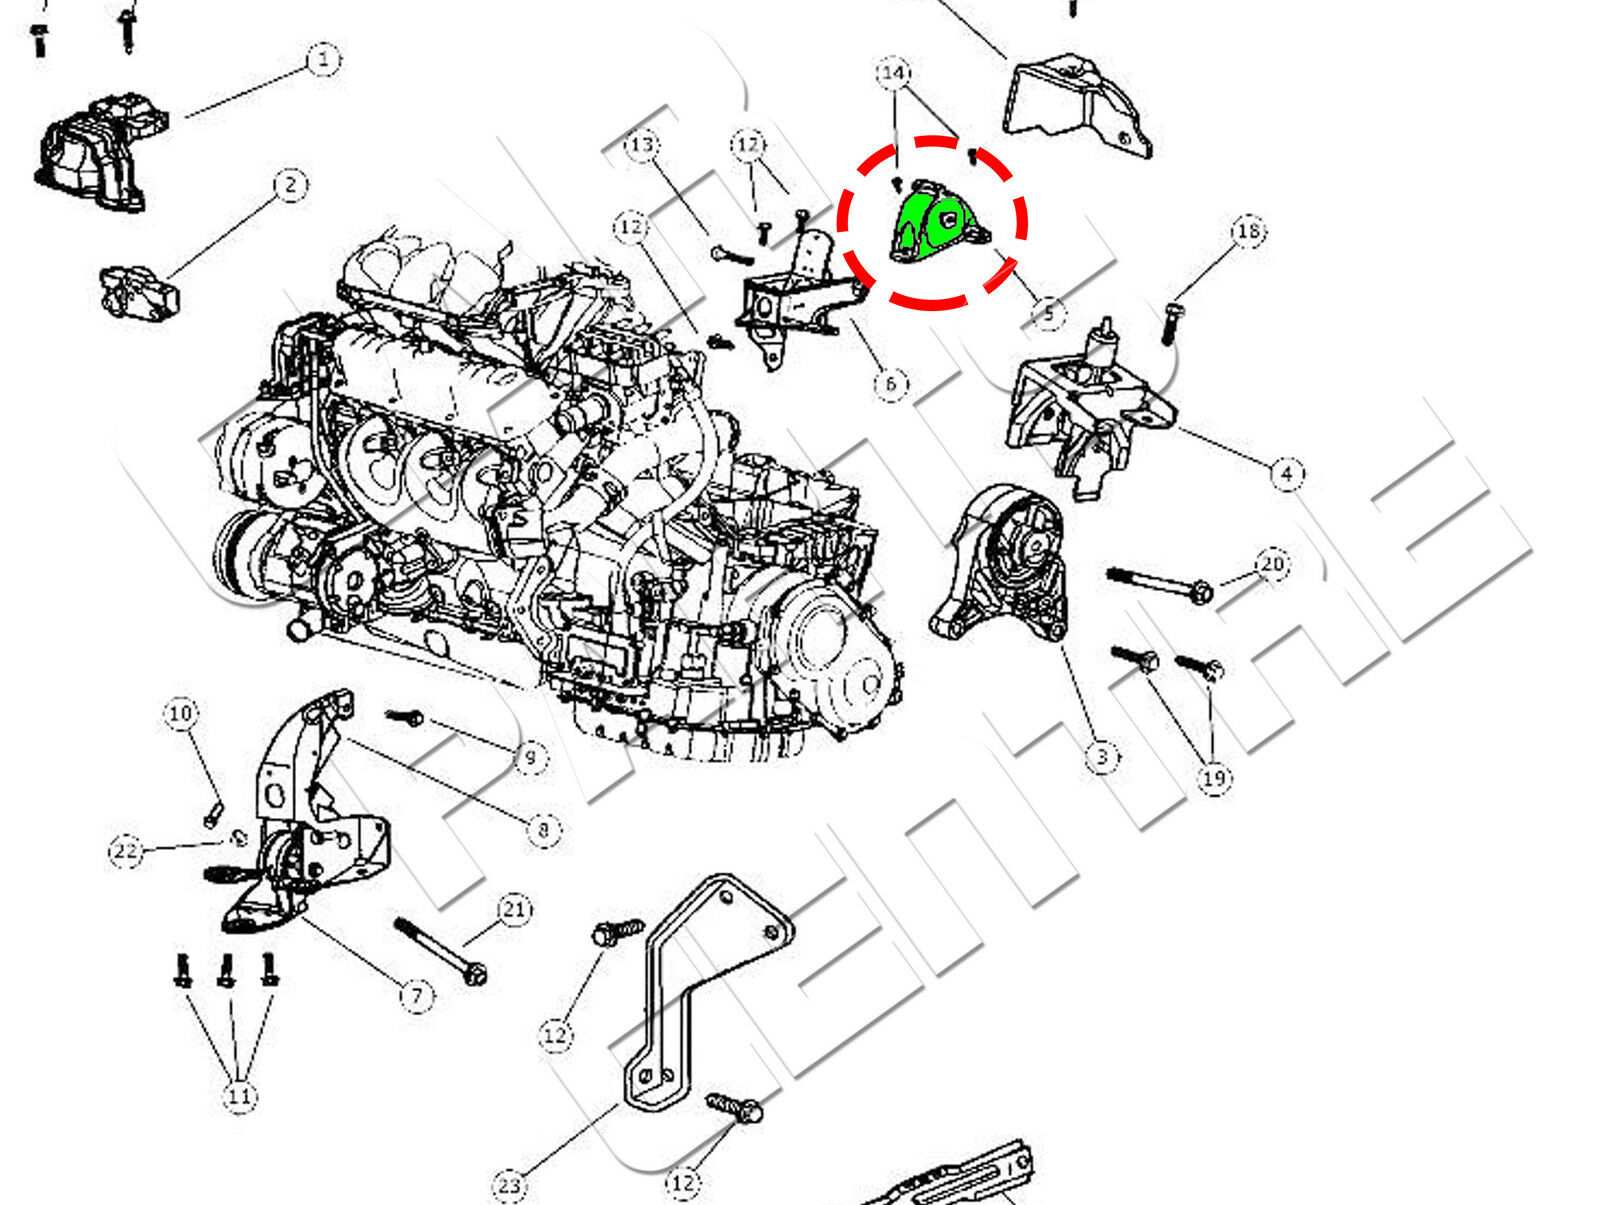 Gm Engine Cooling Diagram Chrysler 3 Completed Wiring Diagrams 3l V6 Blog 33 Coolant System